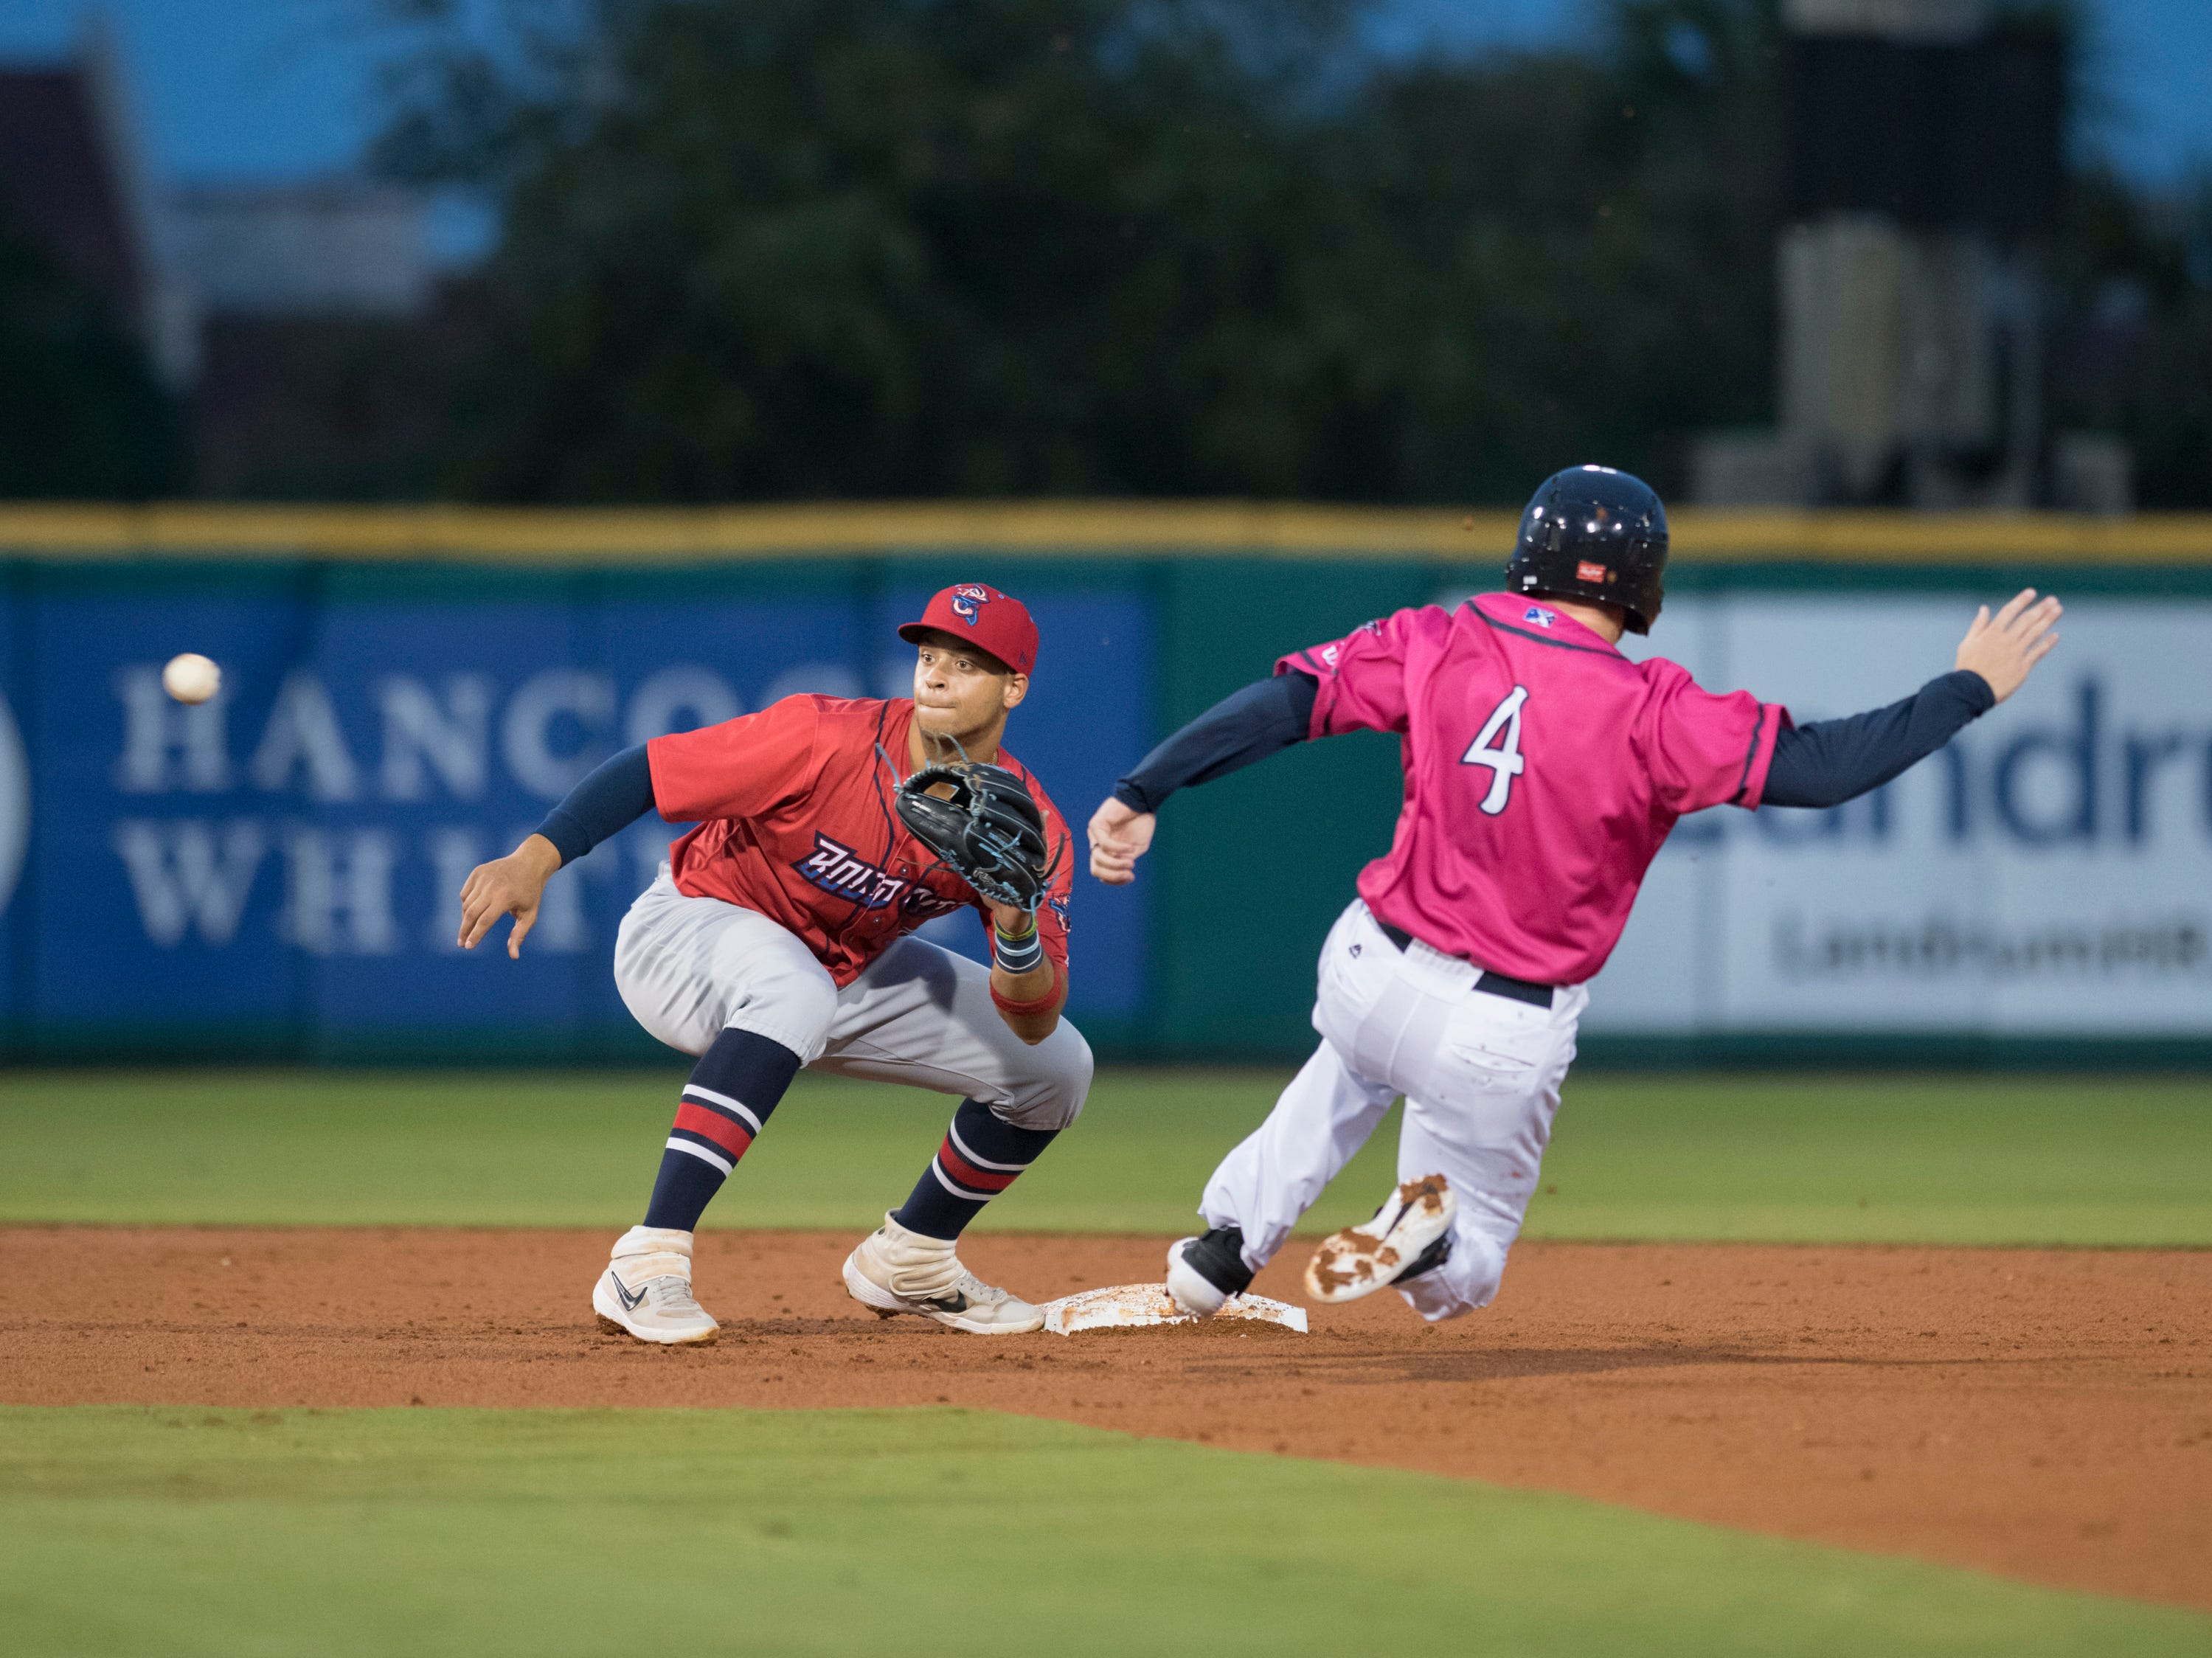 Shortstop Joe Dunand (3) gets the throw to tag out Tanner English (4) as he tries to steal second base during the Jacksonville Jumbo Shrimp vs Pensacola Blue Wahoos baseball game in Pensacola on Friday, April 12, 2019.